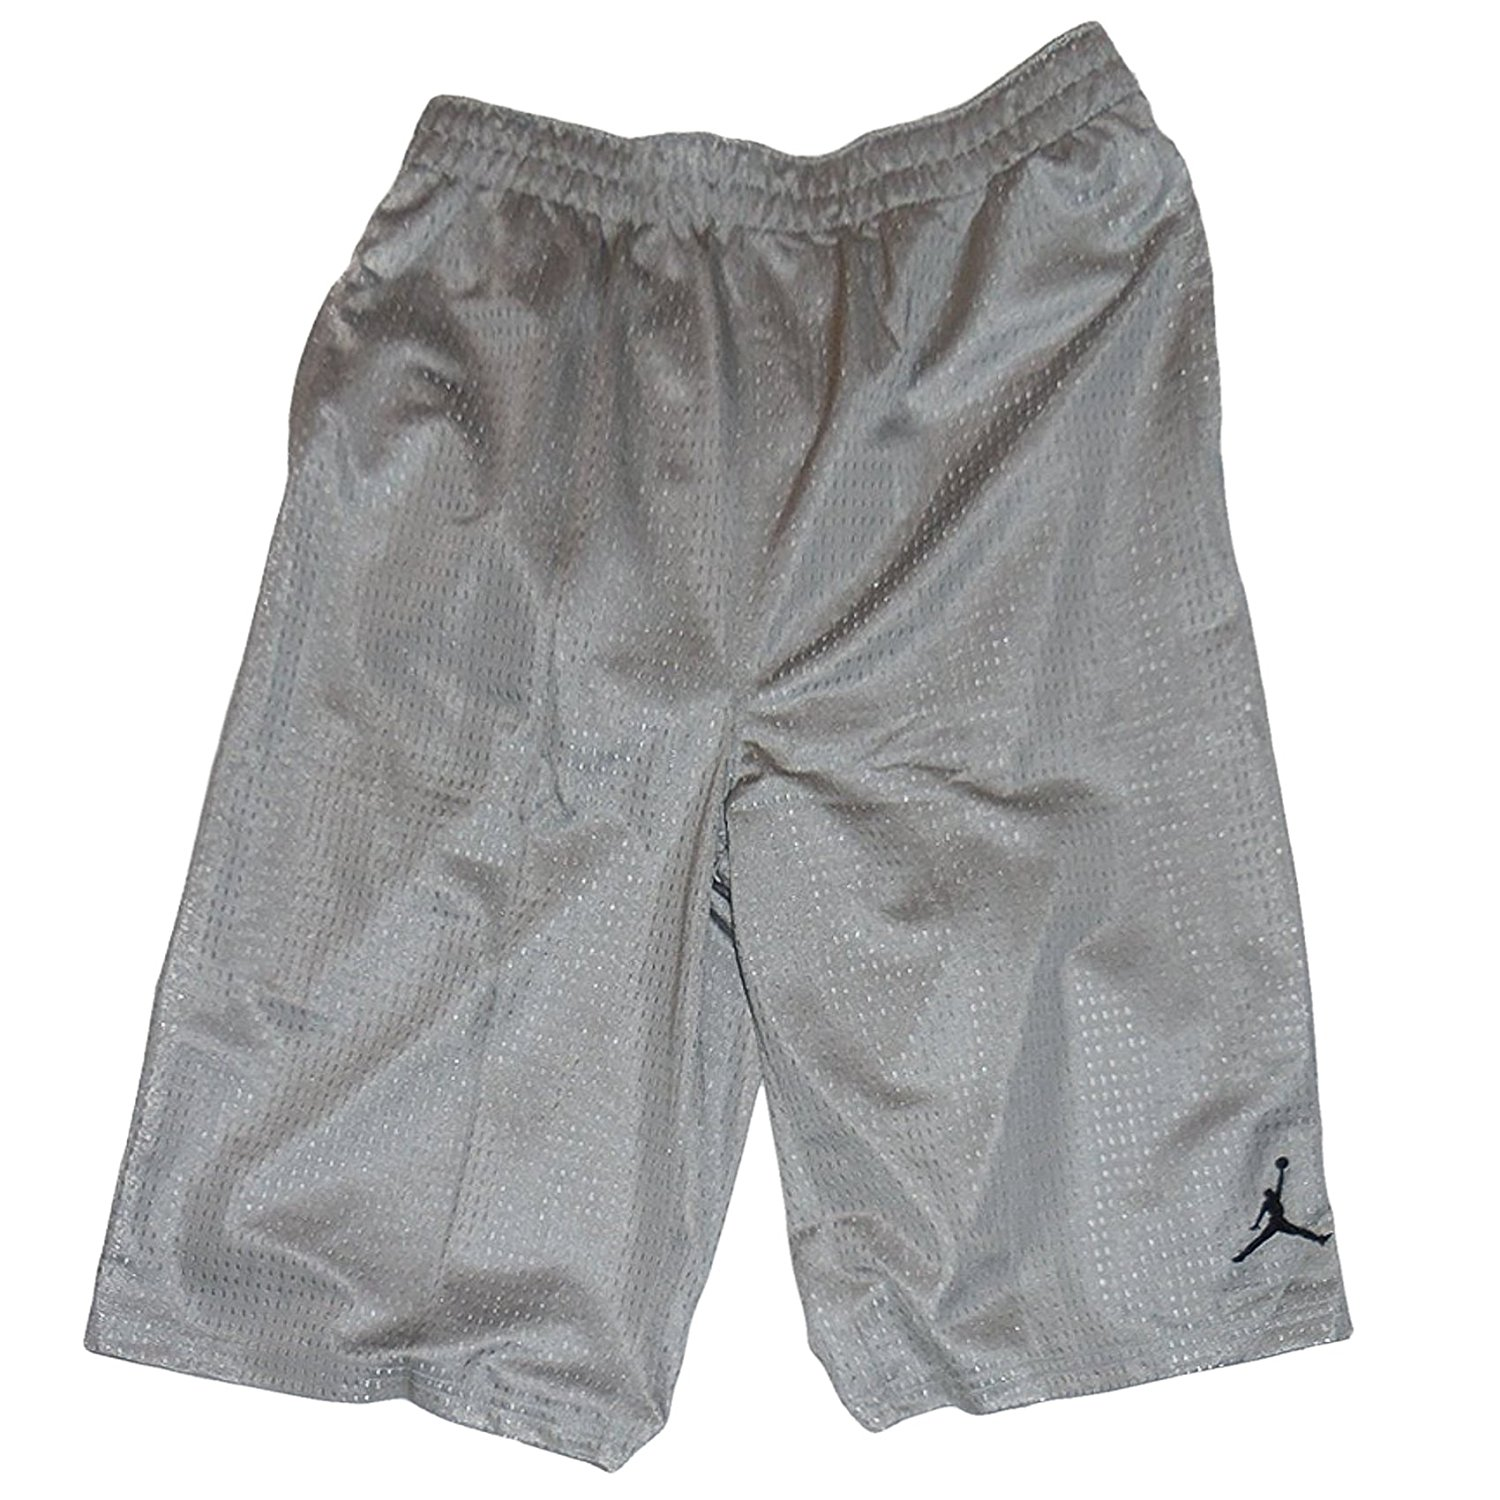 455096c01d7f Get Quotations · Nike Jordan Jumpman Basketball Mesh Shorts